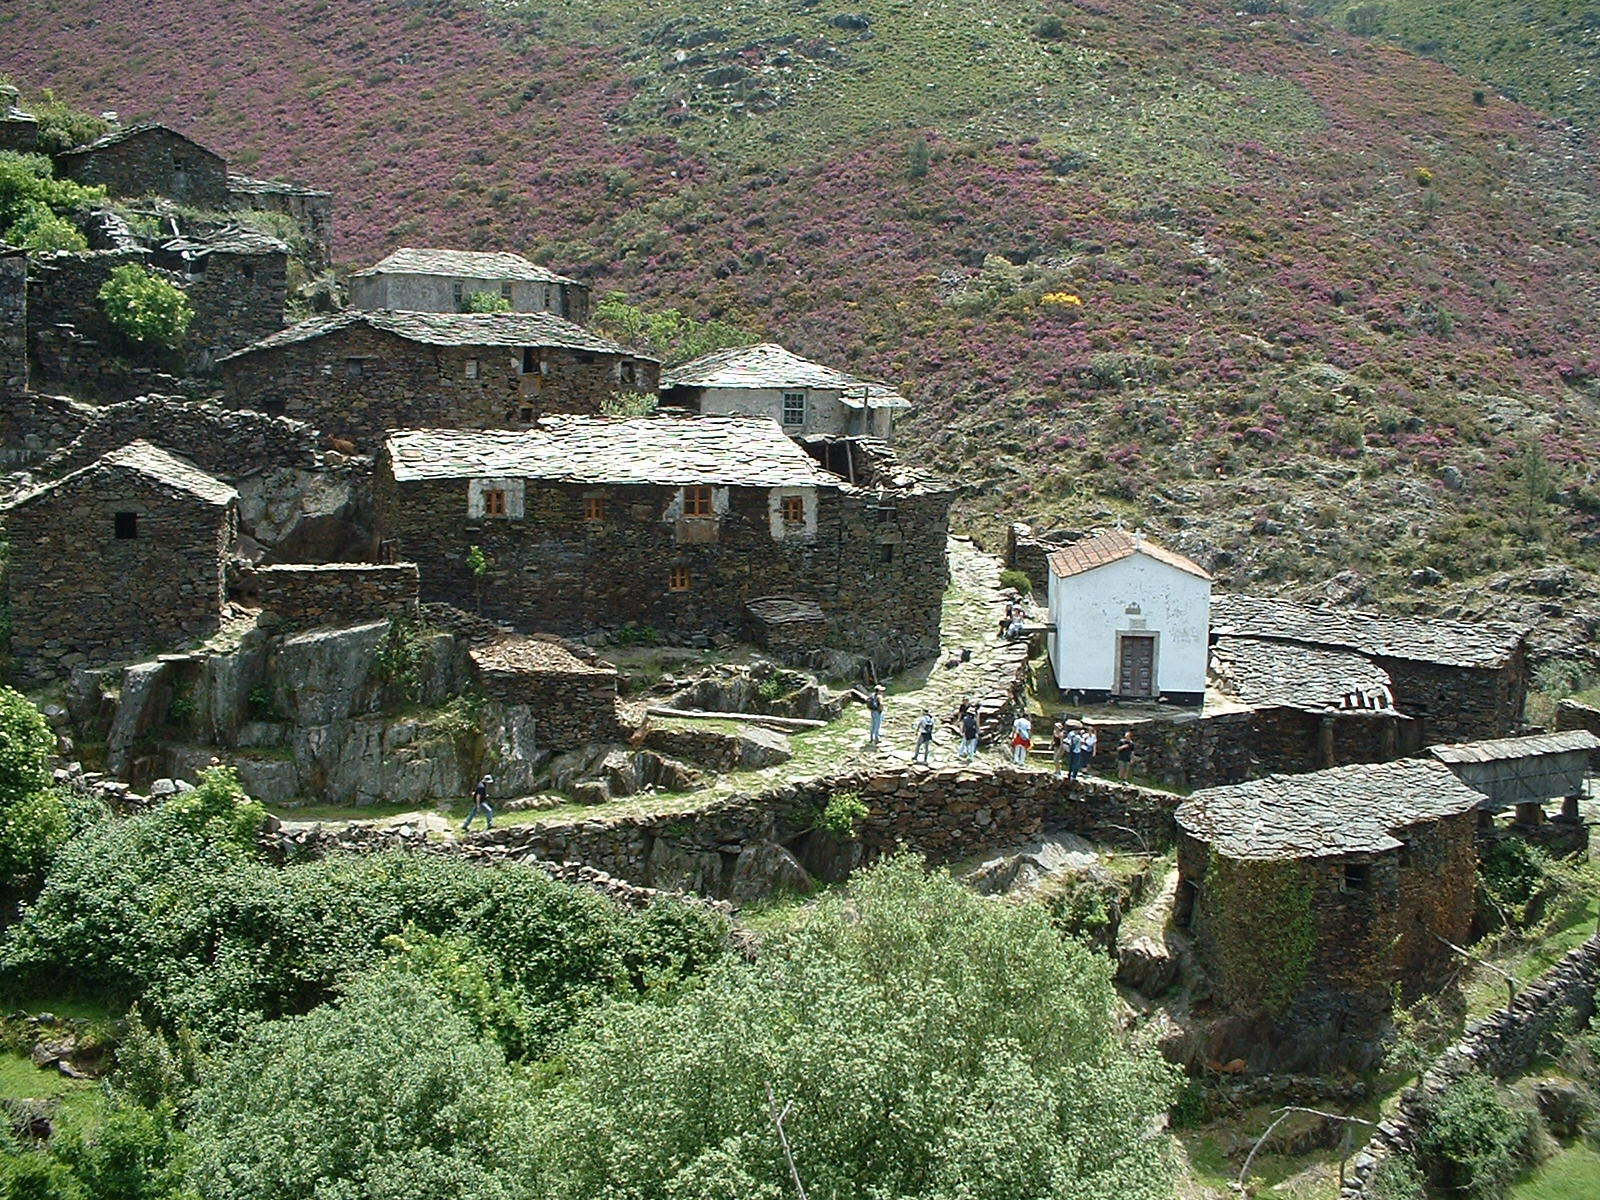 File:Abandoned village 2004.jpg - Wikimedia Commons